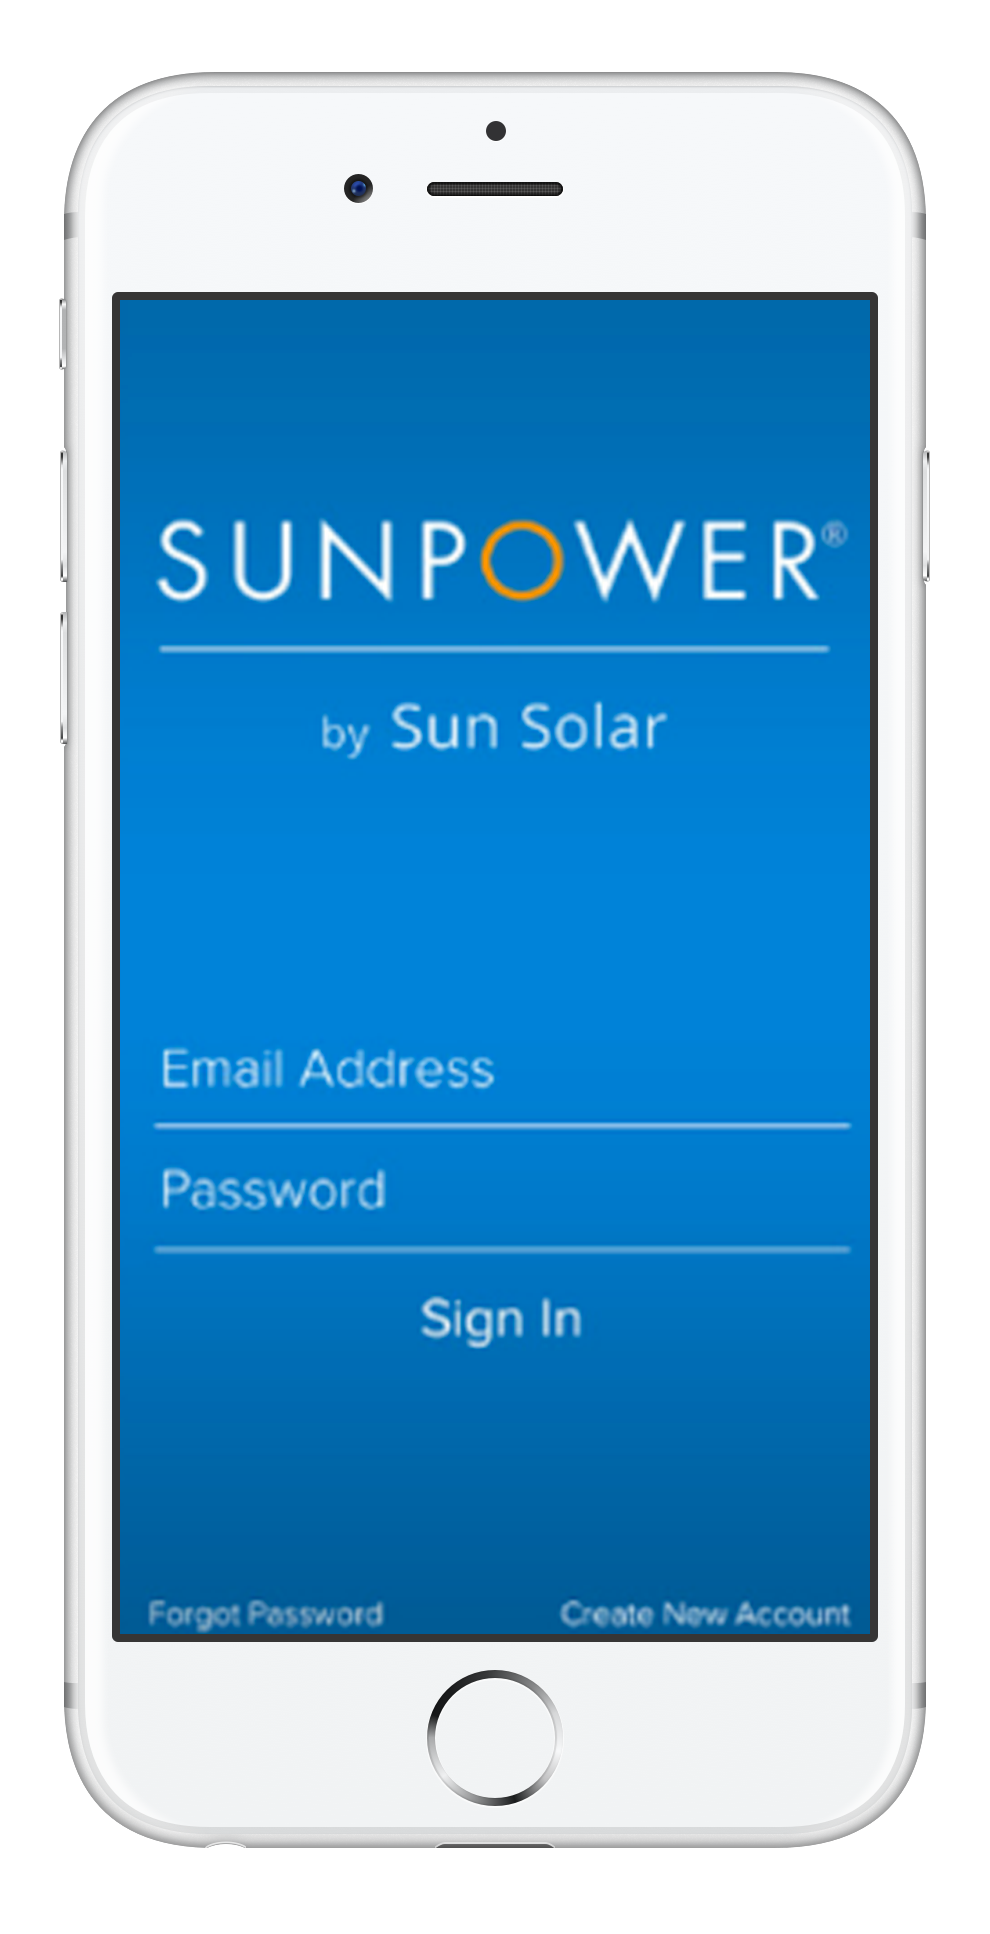 sunpower.png